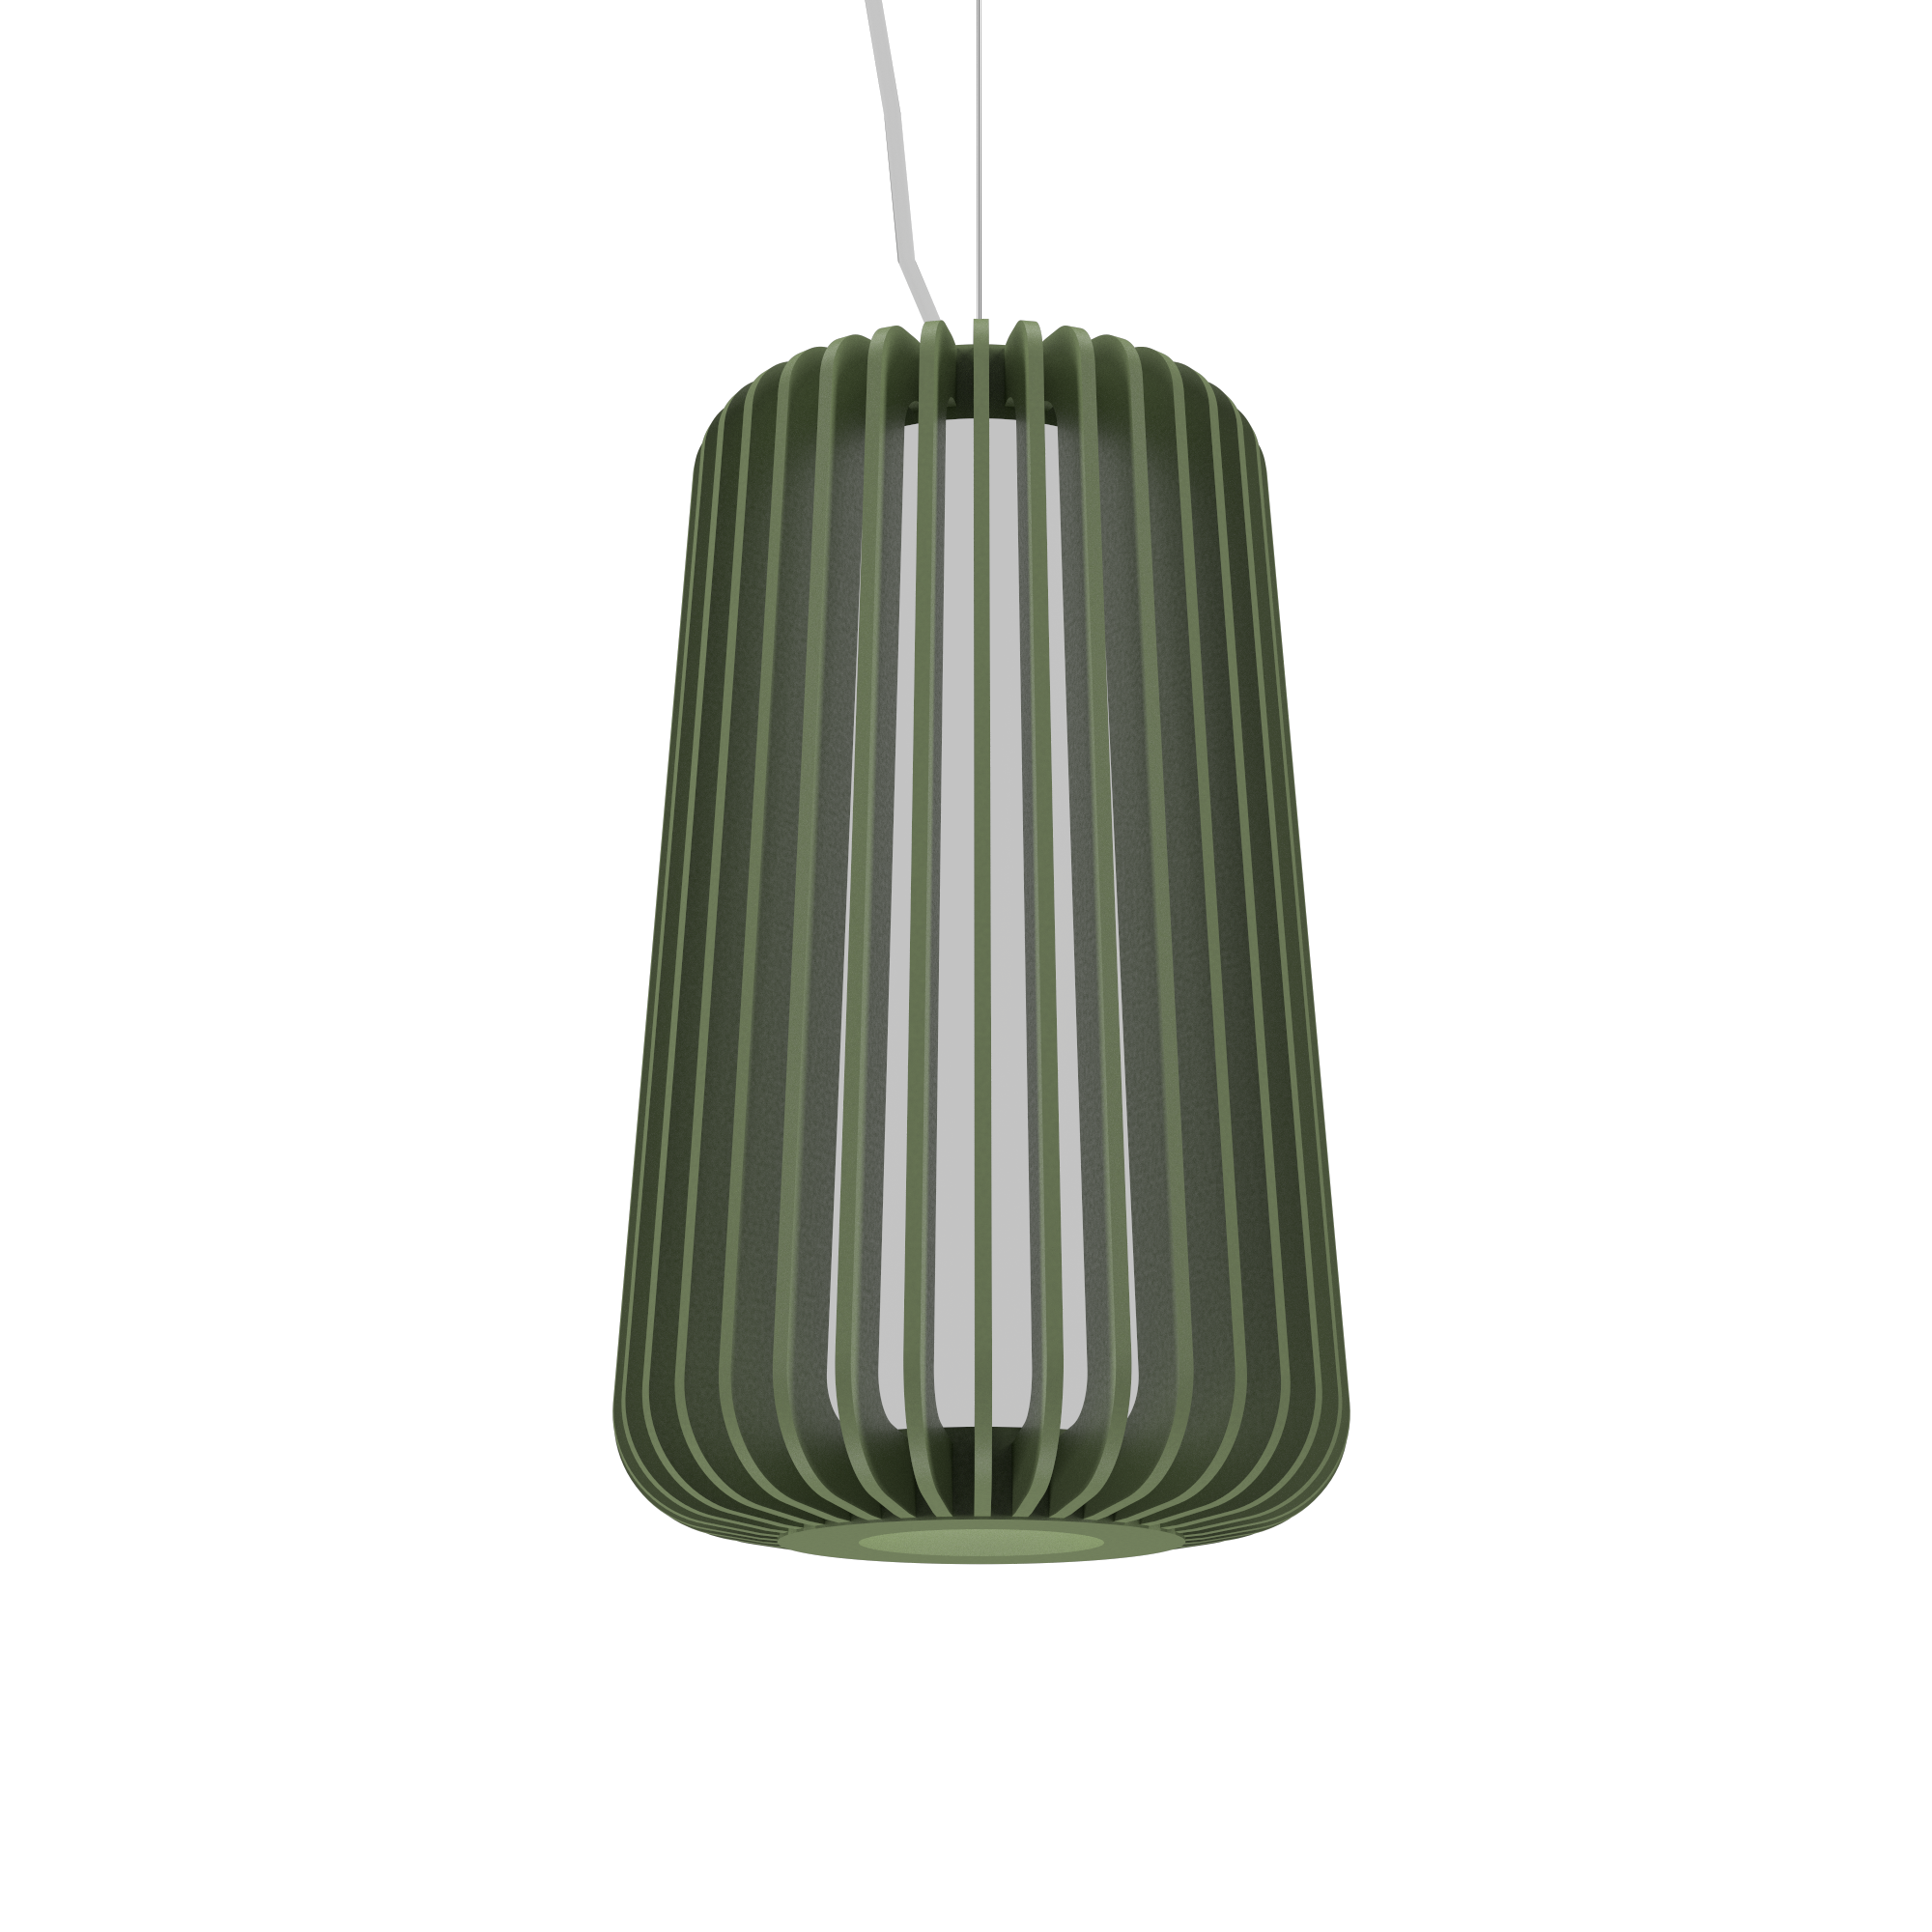 Pendant Lamp Accord Stecche Di Legno 1427 - Stecche Di Legno Line Accord Lighting | 30. Olive Green